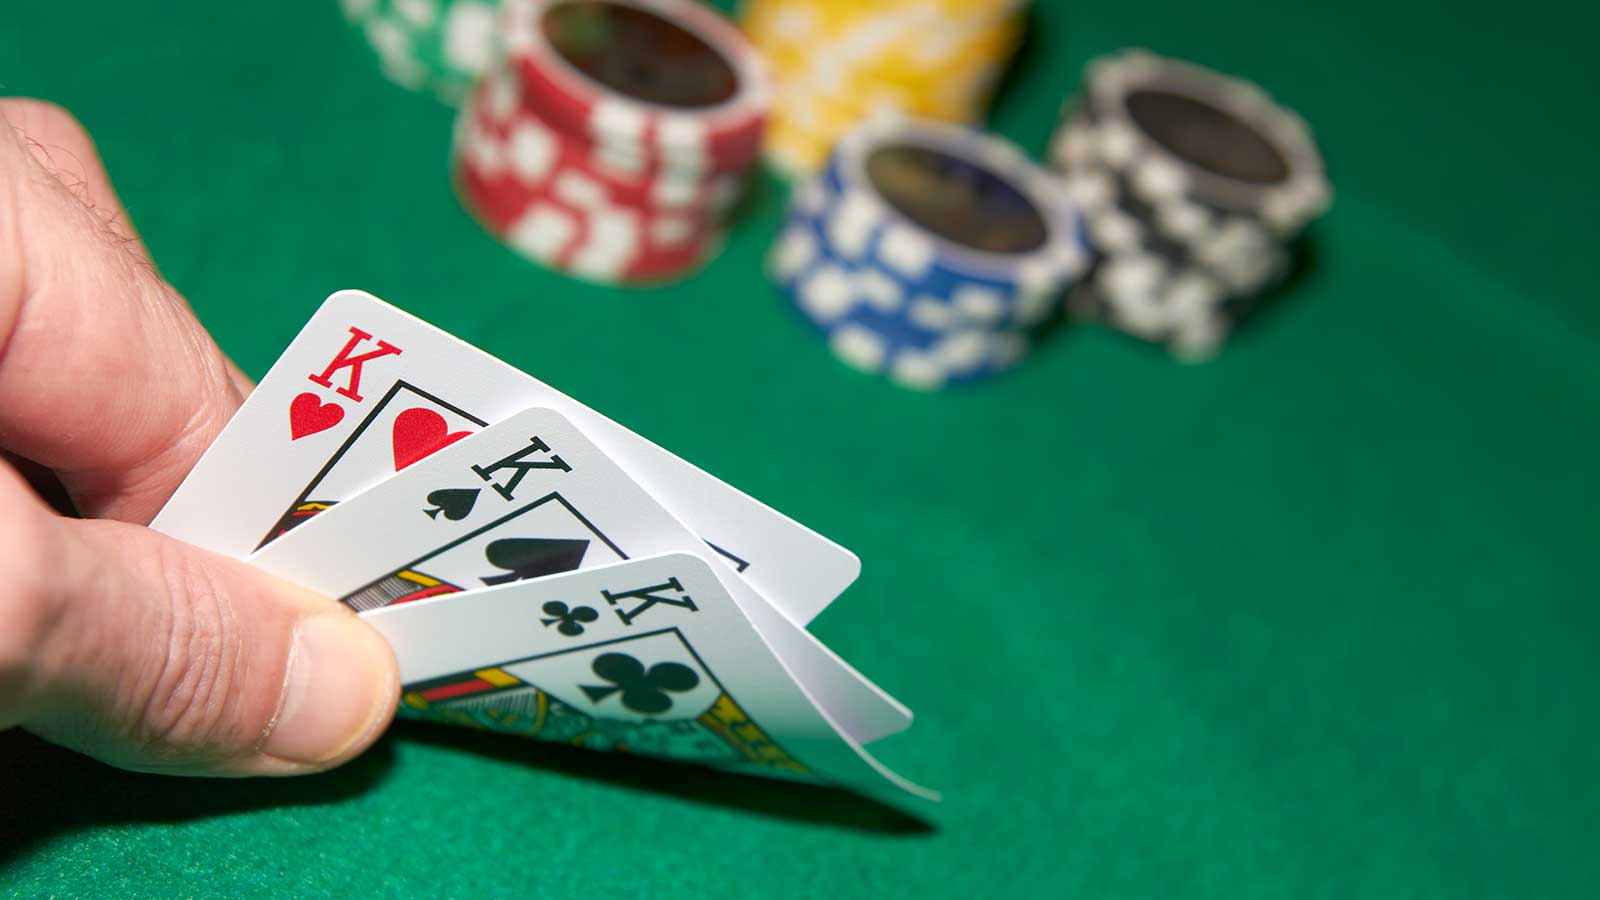 The Maxbet list (Daftar Maxbet) is very varied, find out